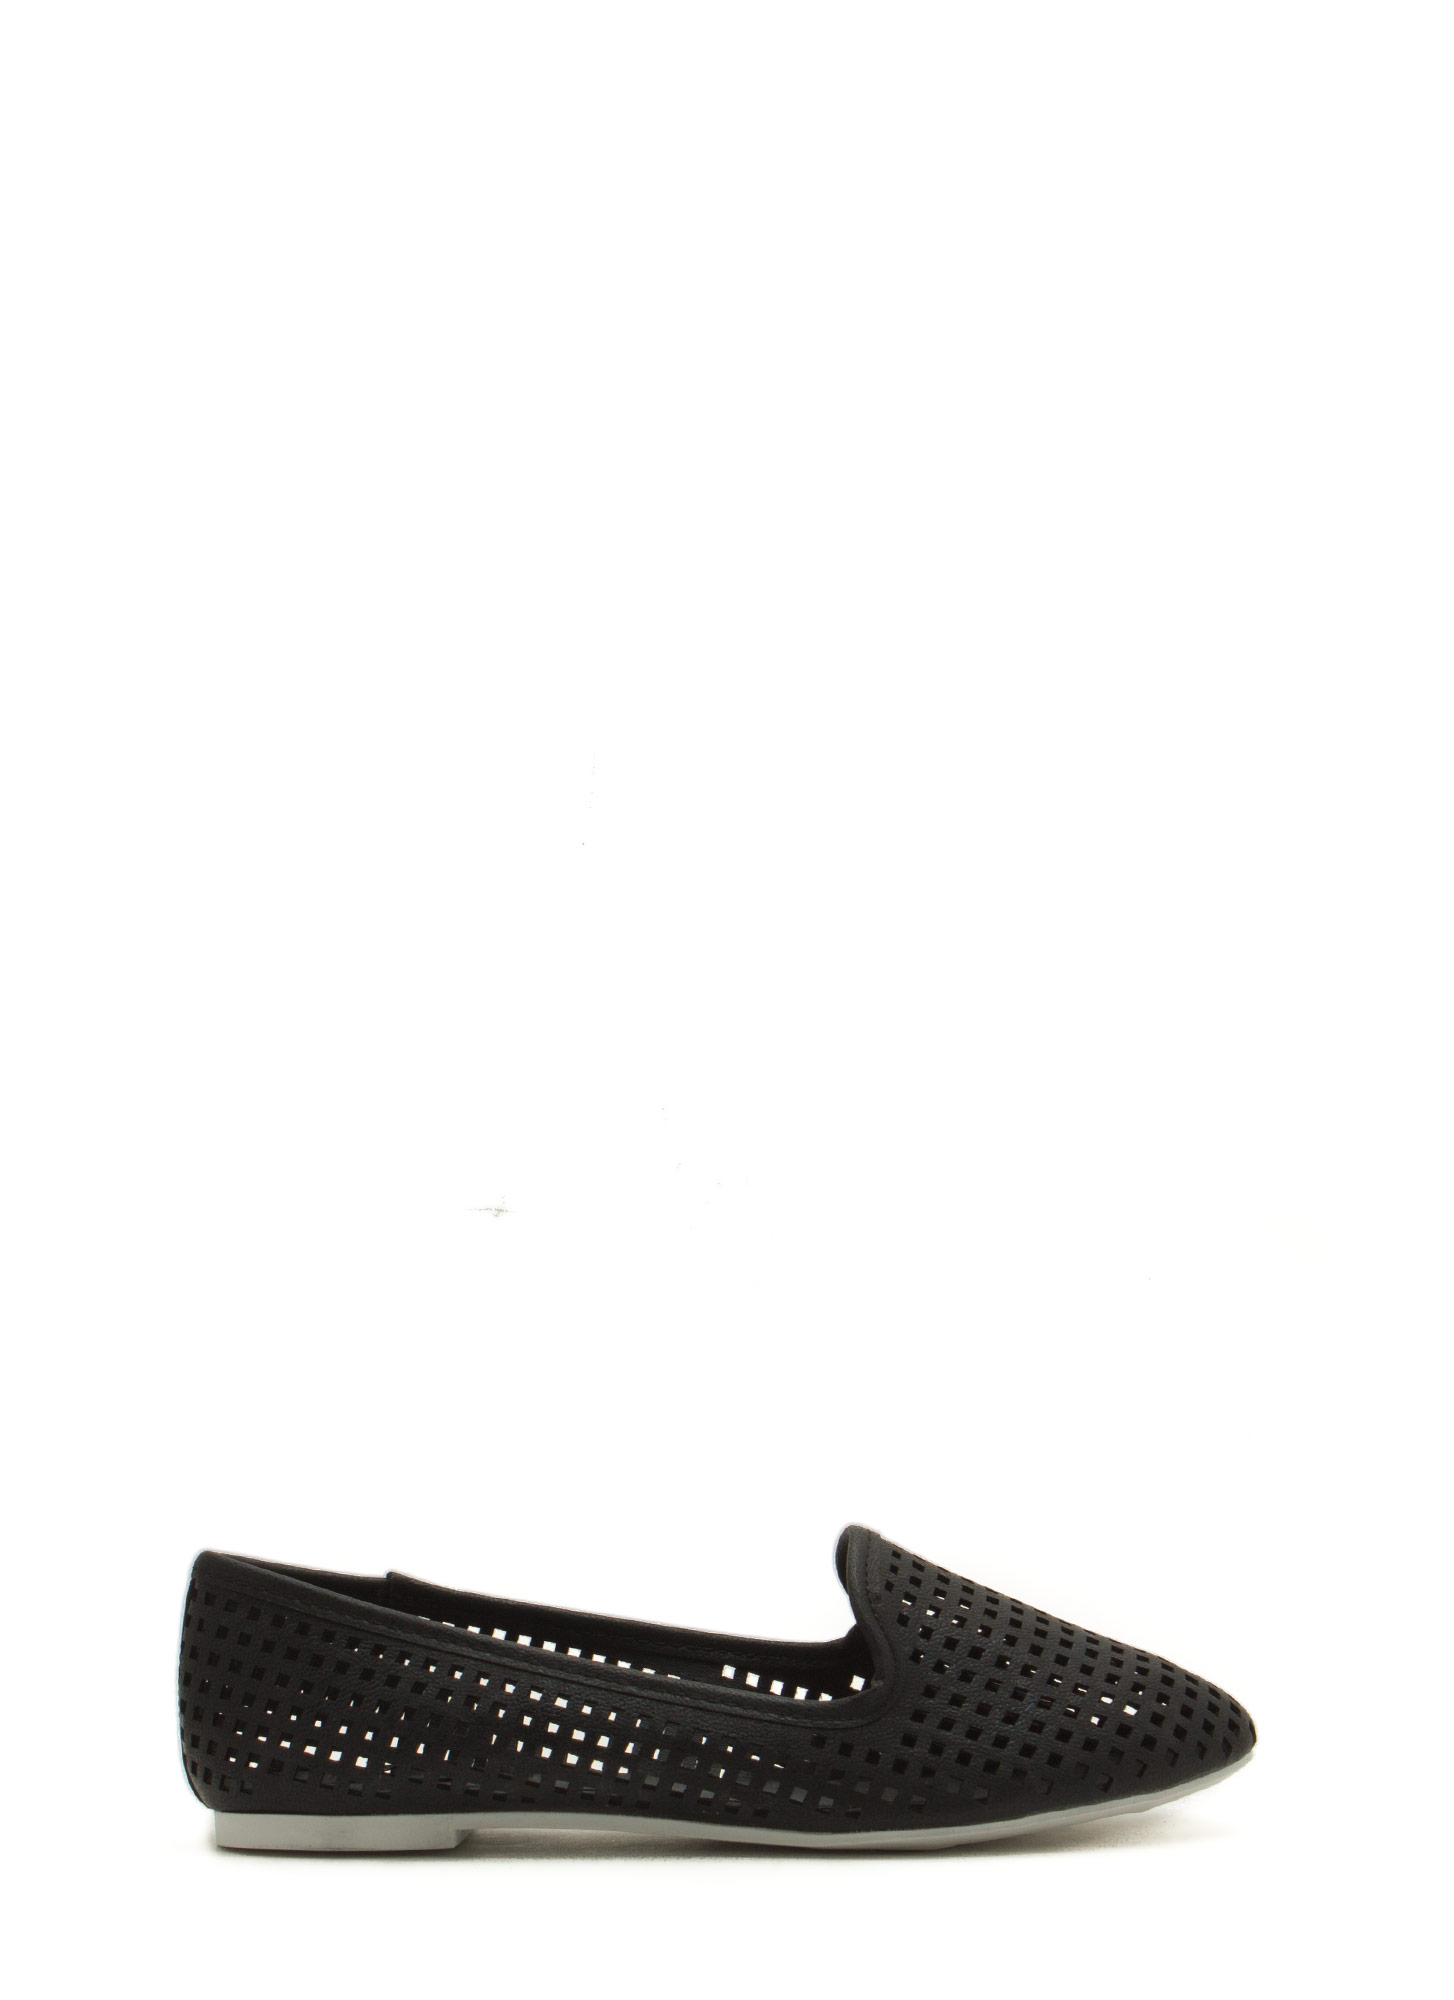 Per-forated Ten Smoking Flats BLACK